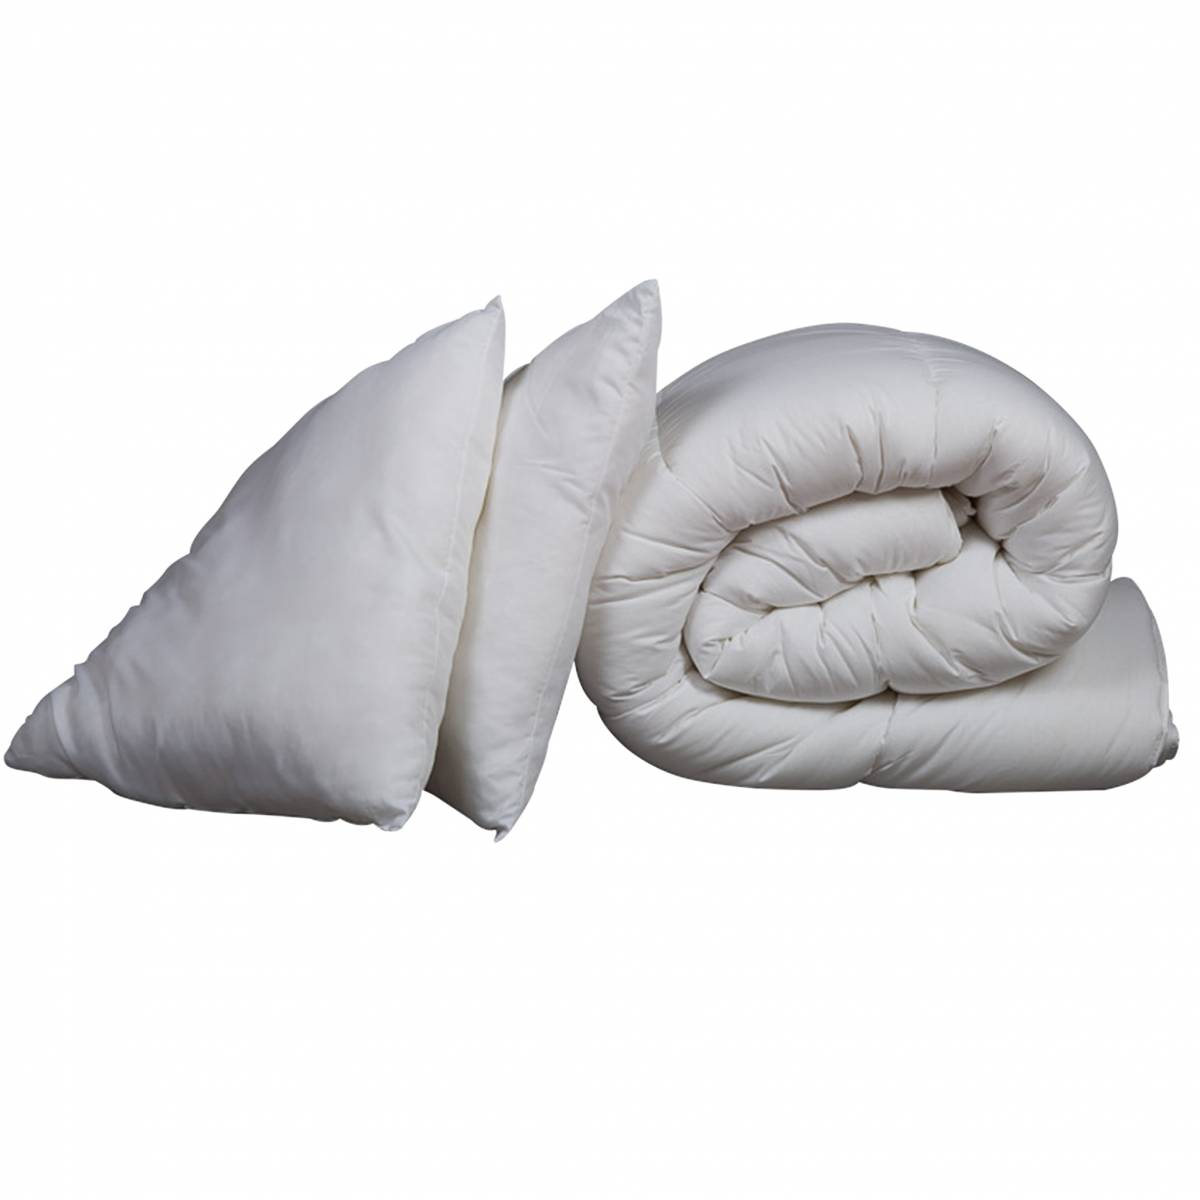 Someo Pack couette hiver 600g 260x240 et oreiller luxe anti-acariens SOMEO